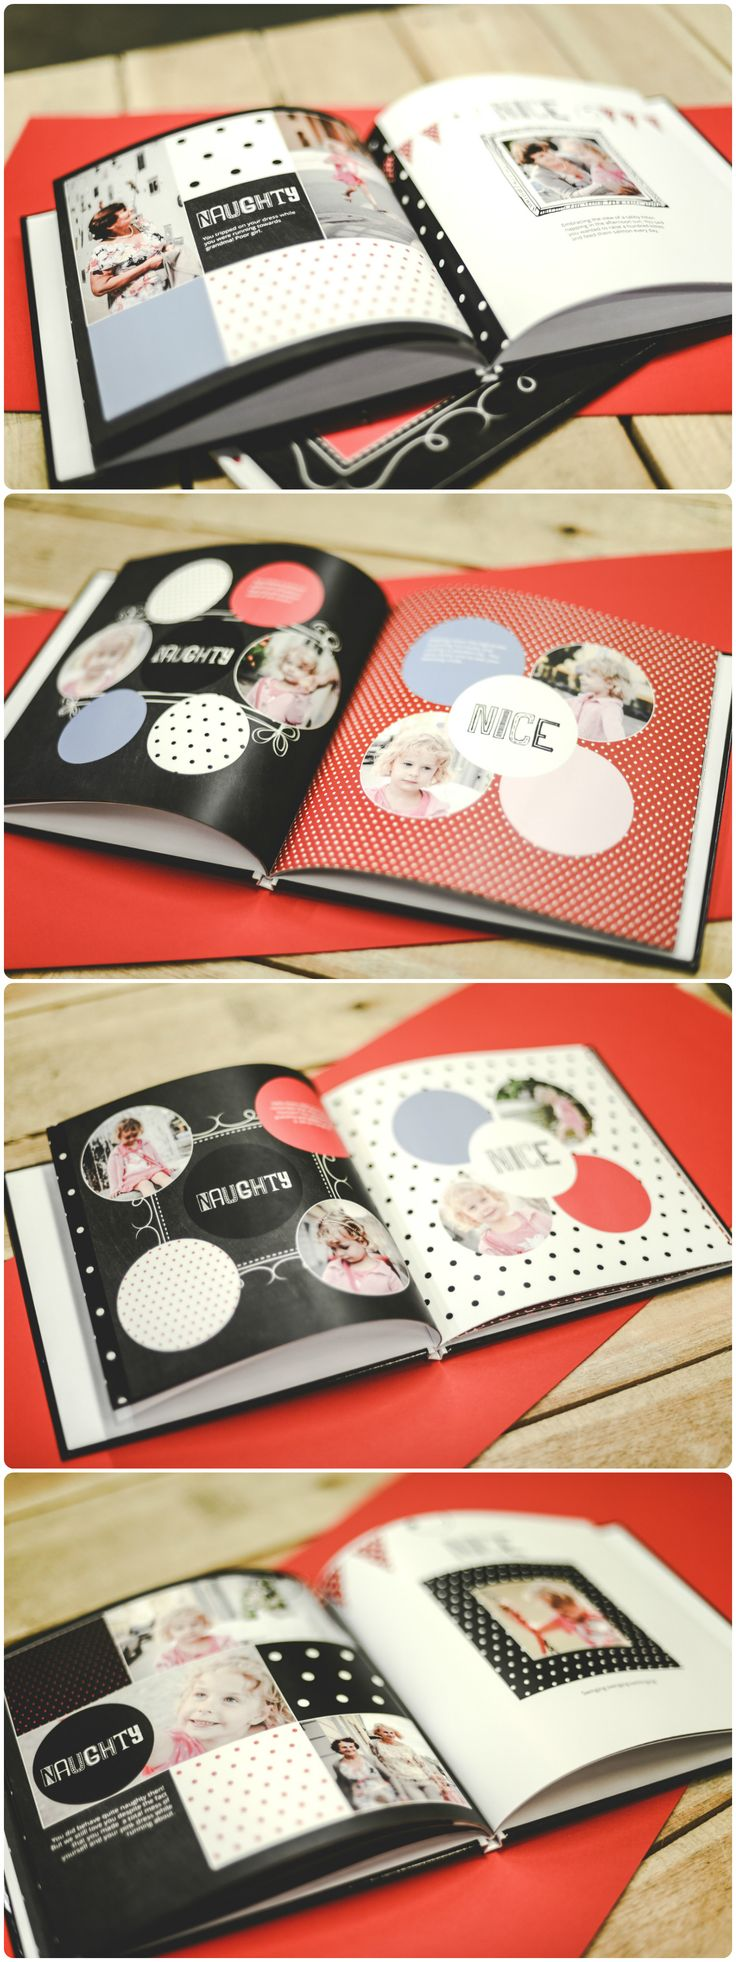 Naughty or Nice photobook for Christmas | Free template ready for your photos | zoombook.com